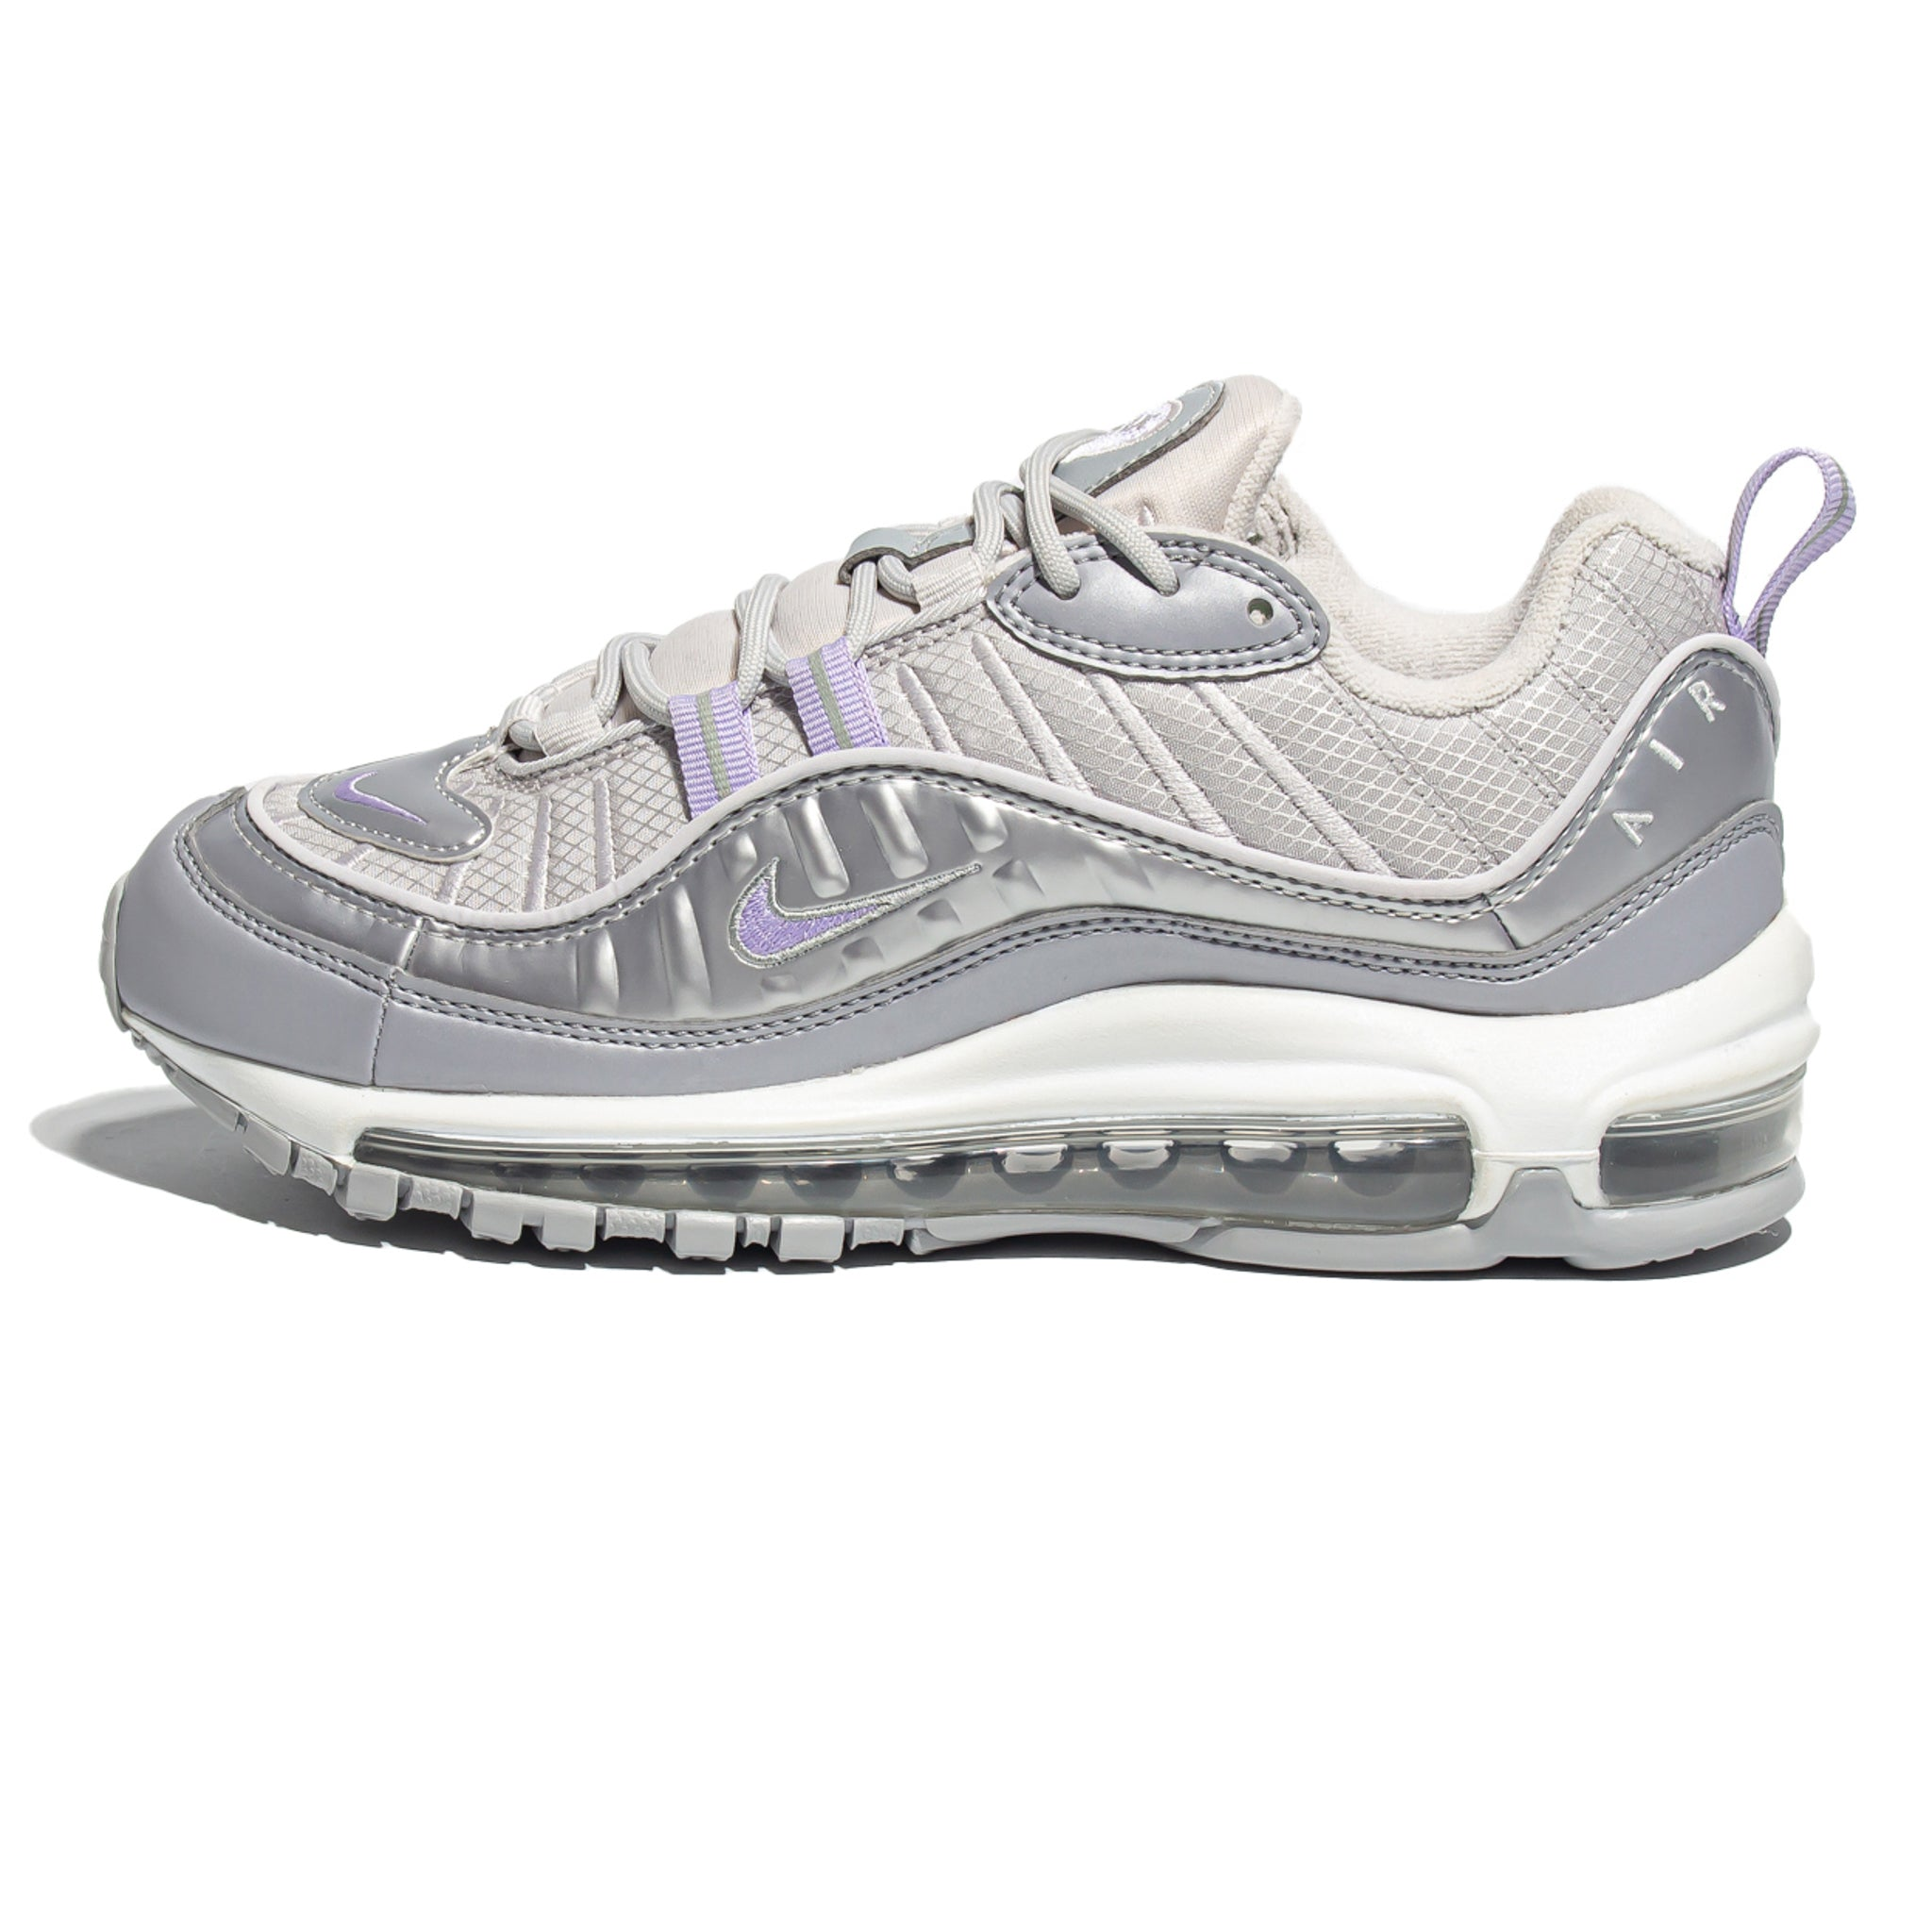 Nike Air Max 98 SE 'Vast Grey/Silver'